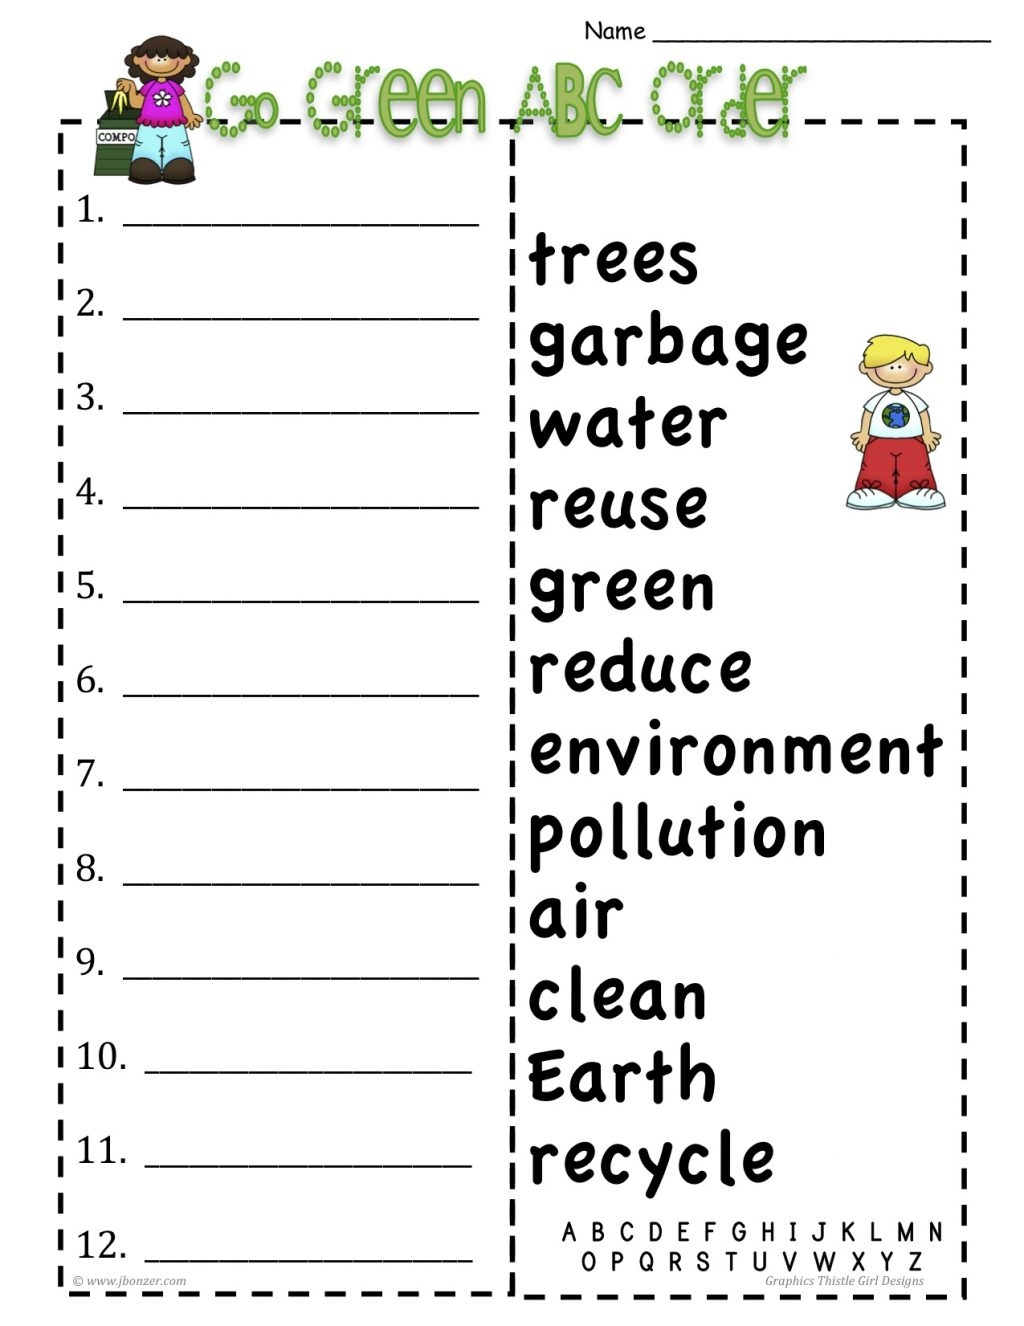 Lovely First Grade Abc Order Worksheets